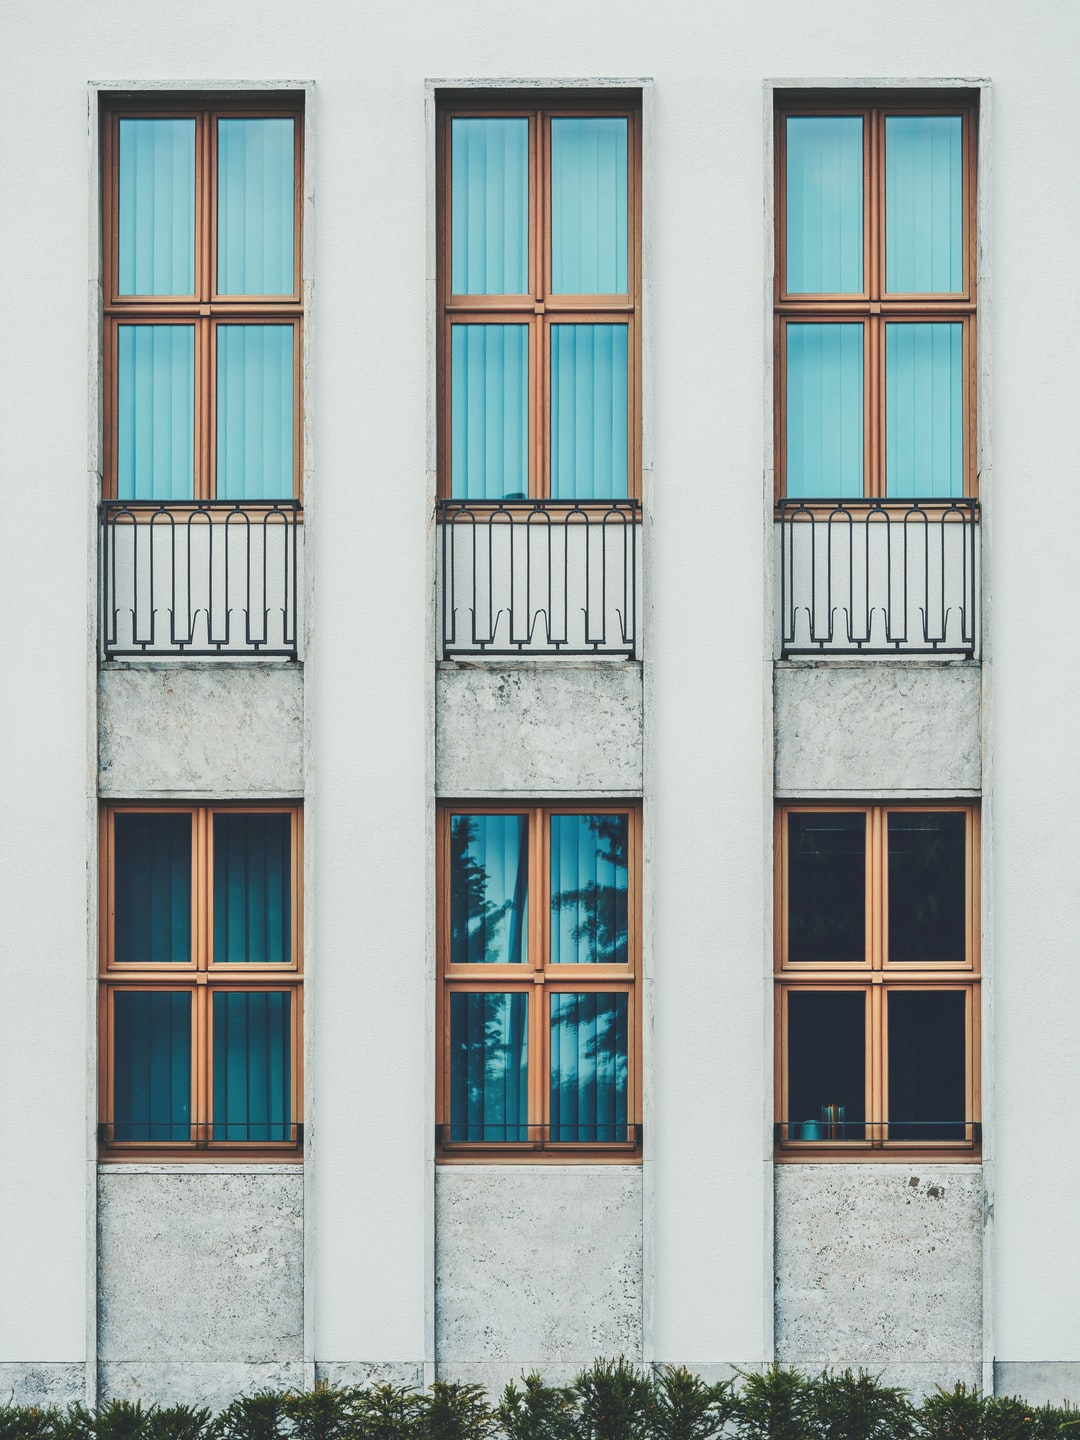 Window Frame Pictures | Download Free Images on Unsplash